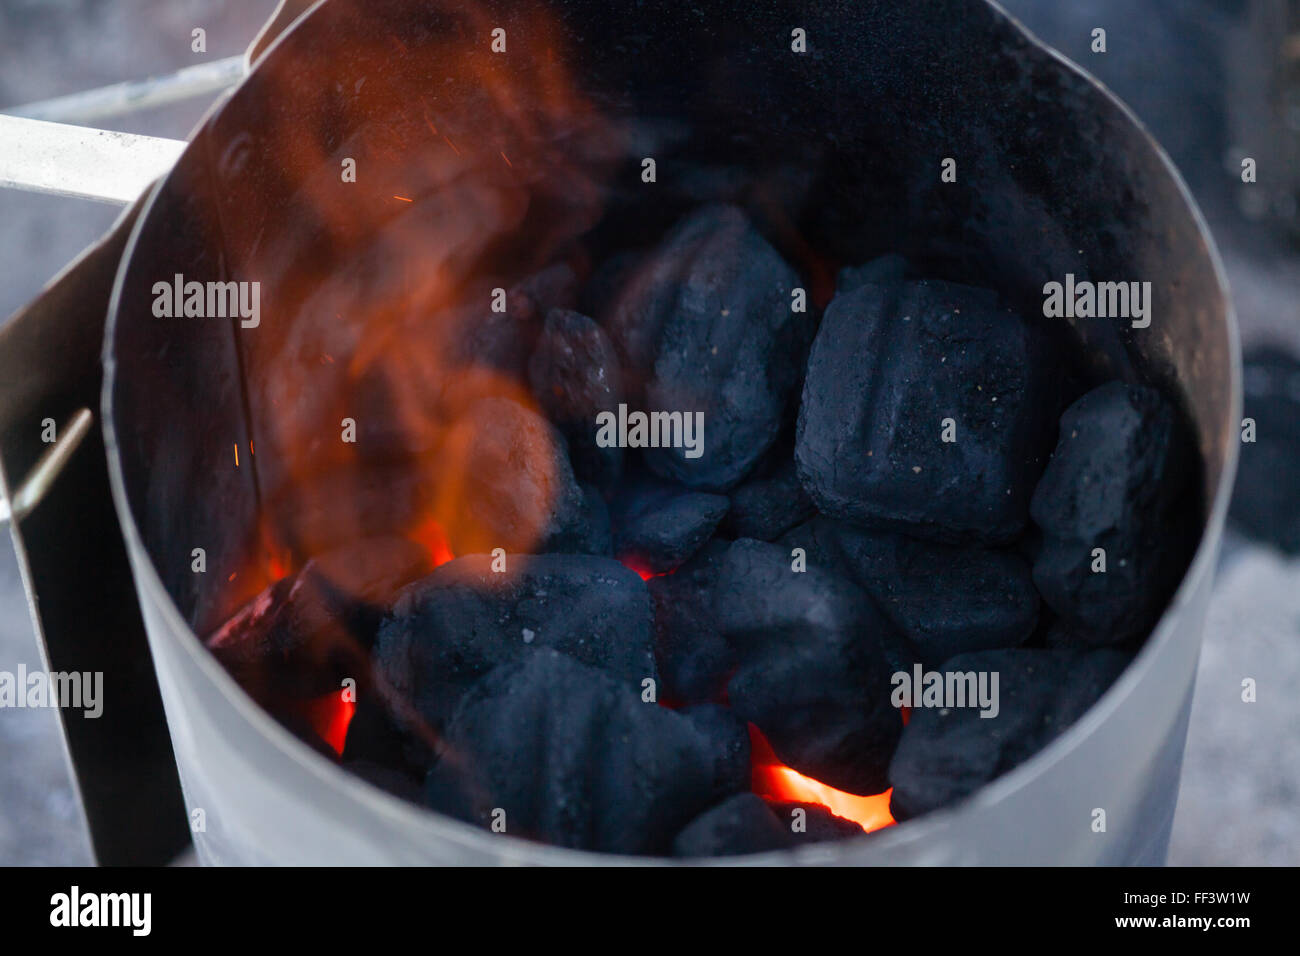 Charcoal burning in metal container - Stock Image